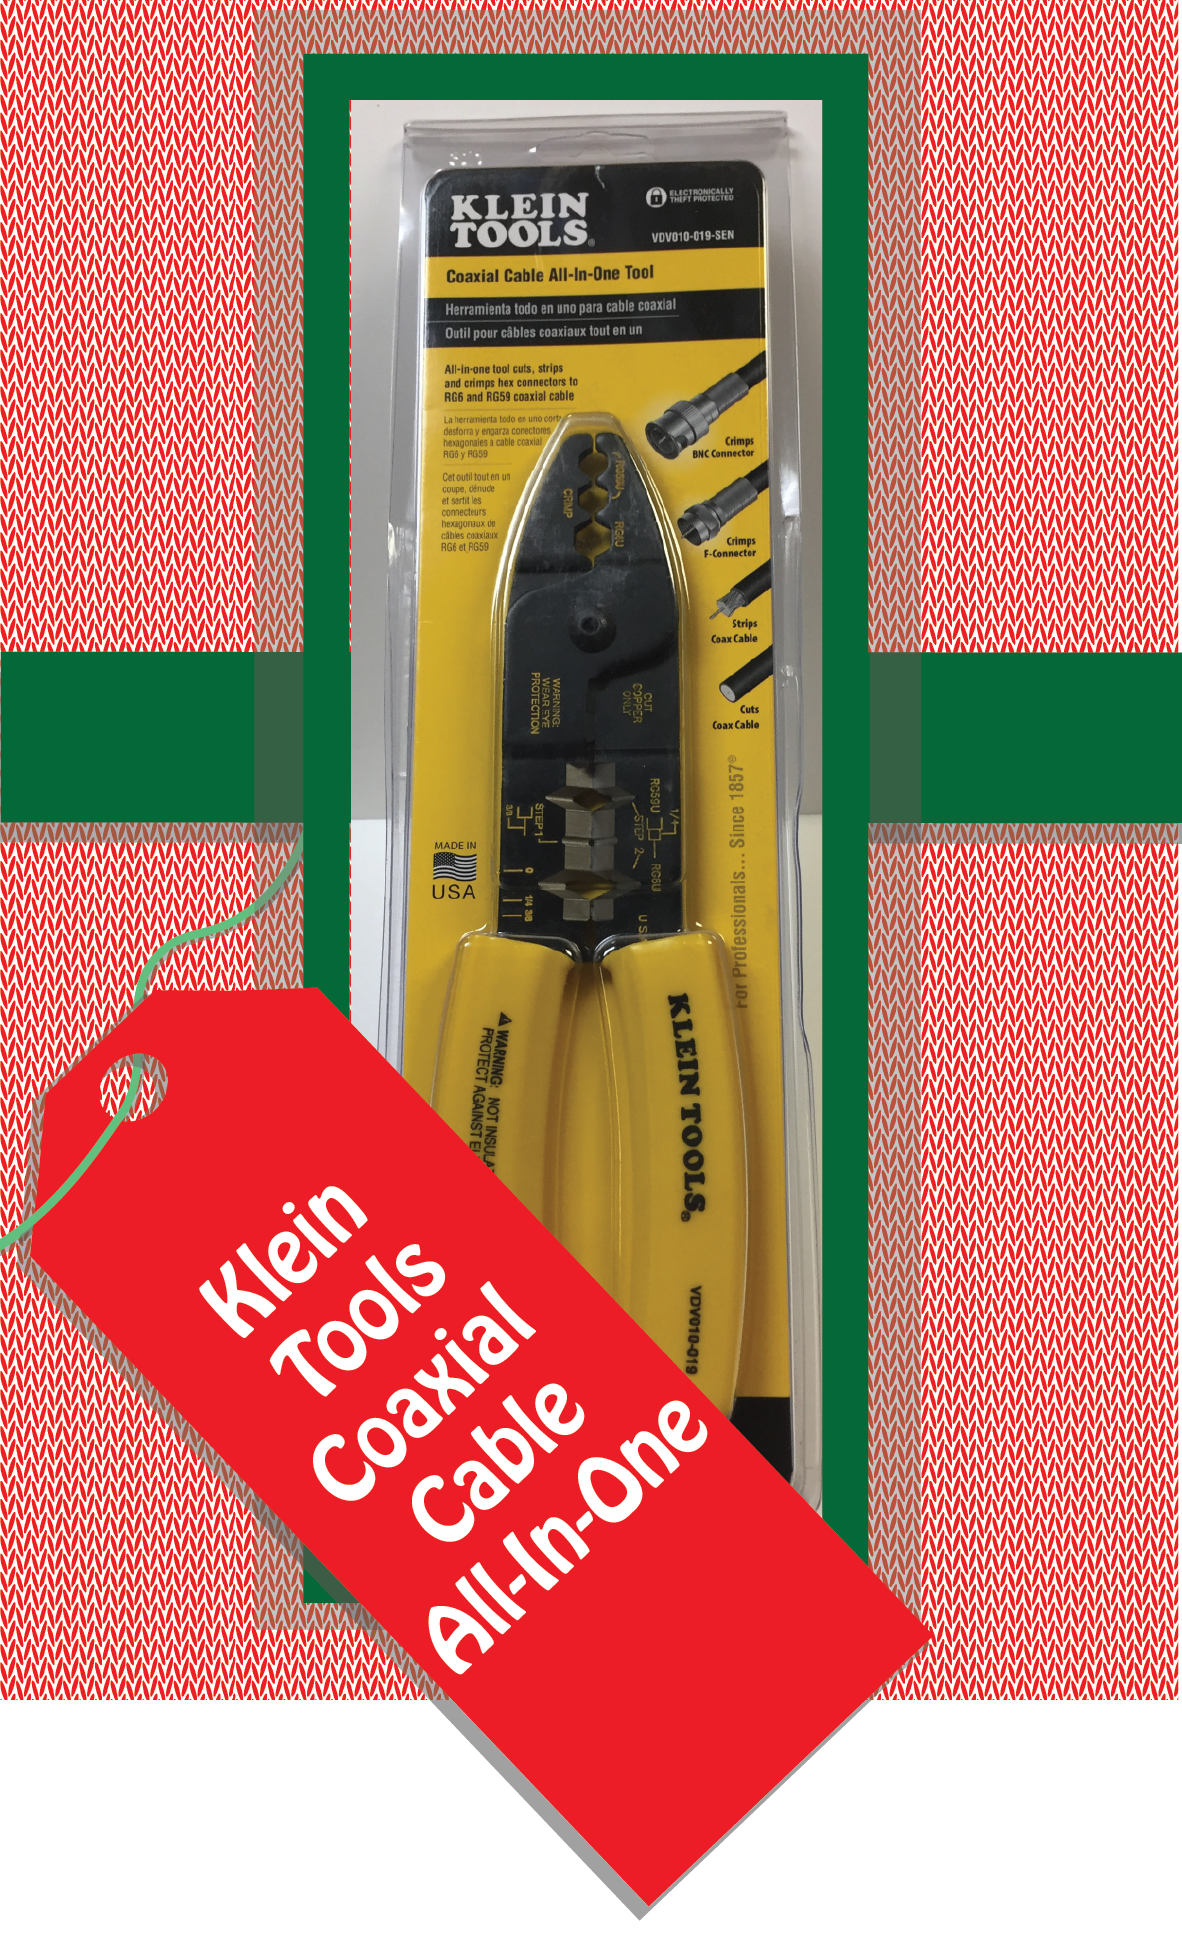 Klein Tools Coaxial Cable All-In-One Tool. Part Number:VDV010-019-SEN